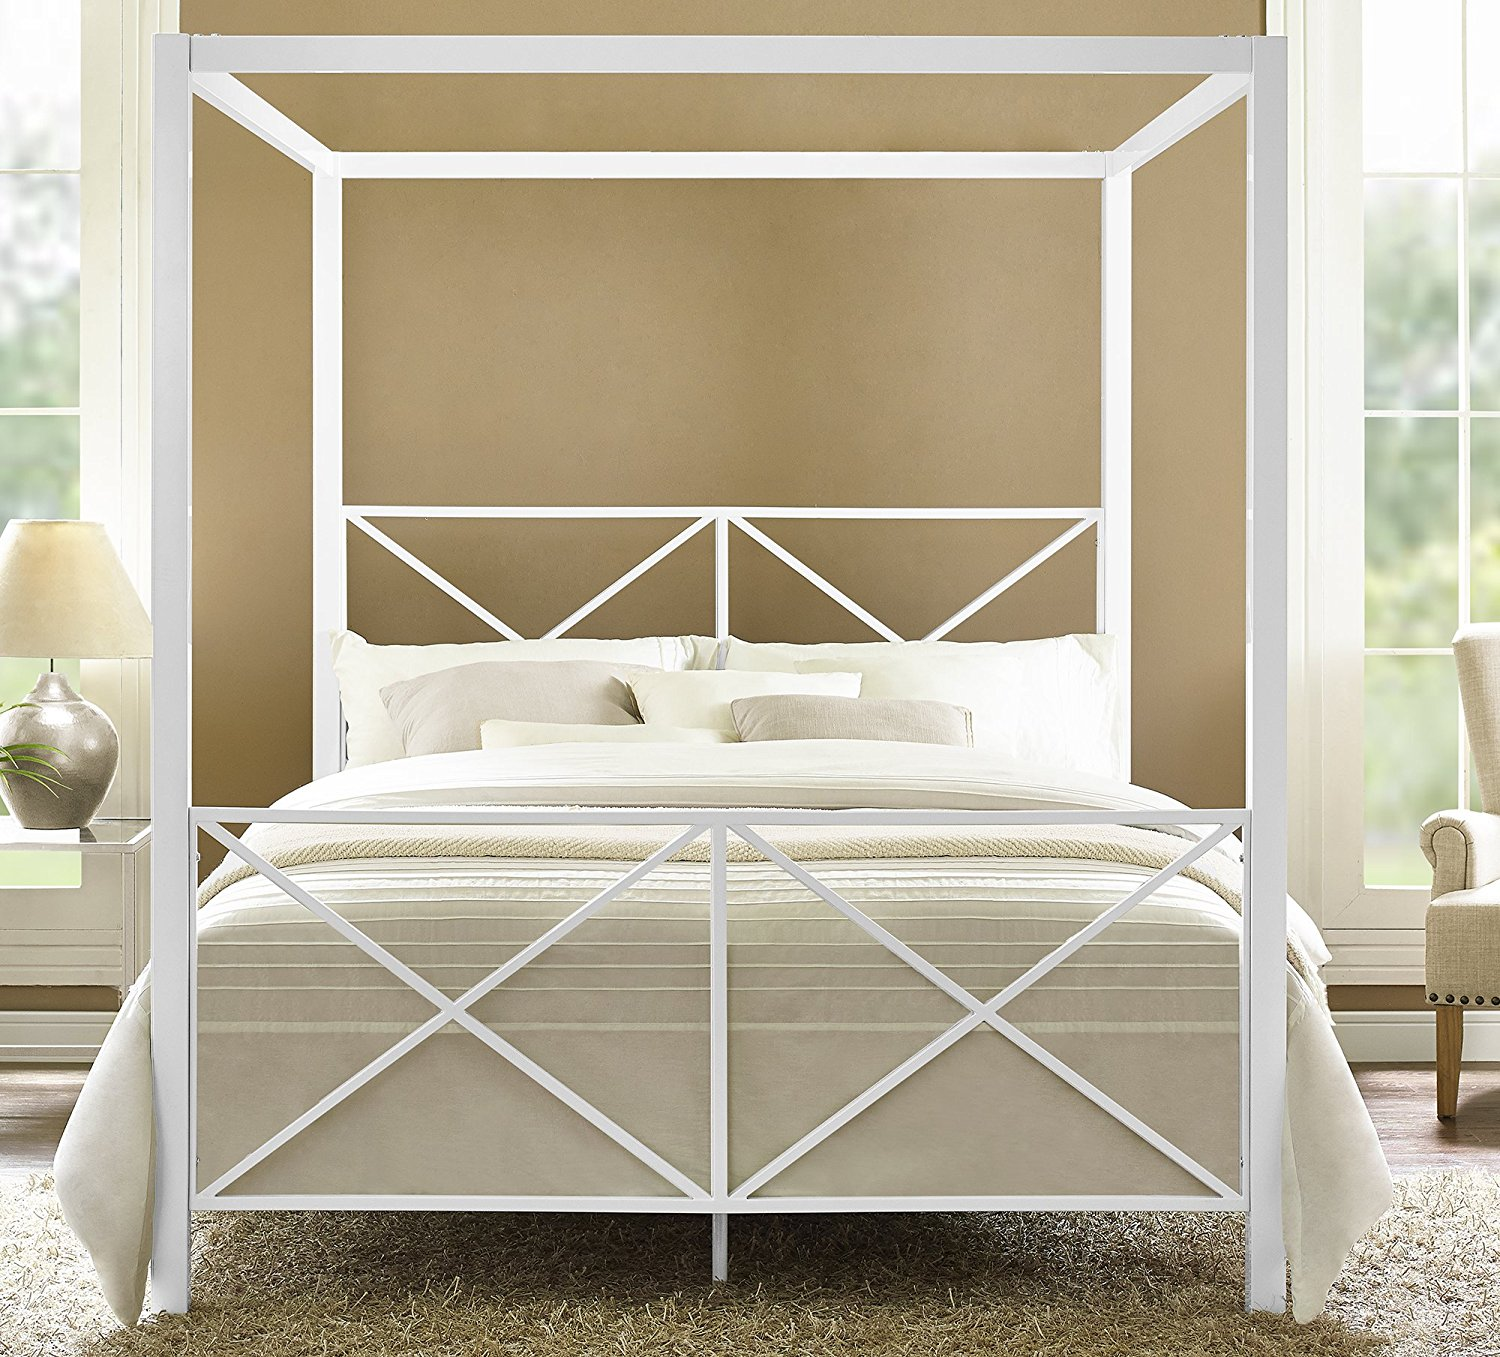 Queen Canopy Bed Frame Ikea Royals